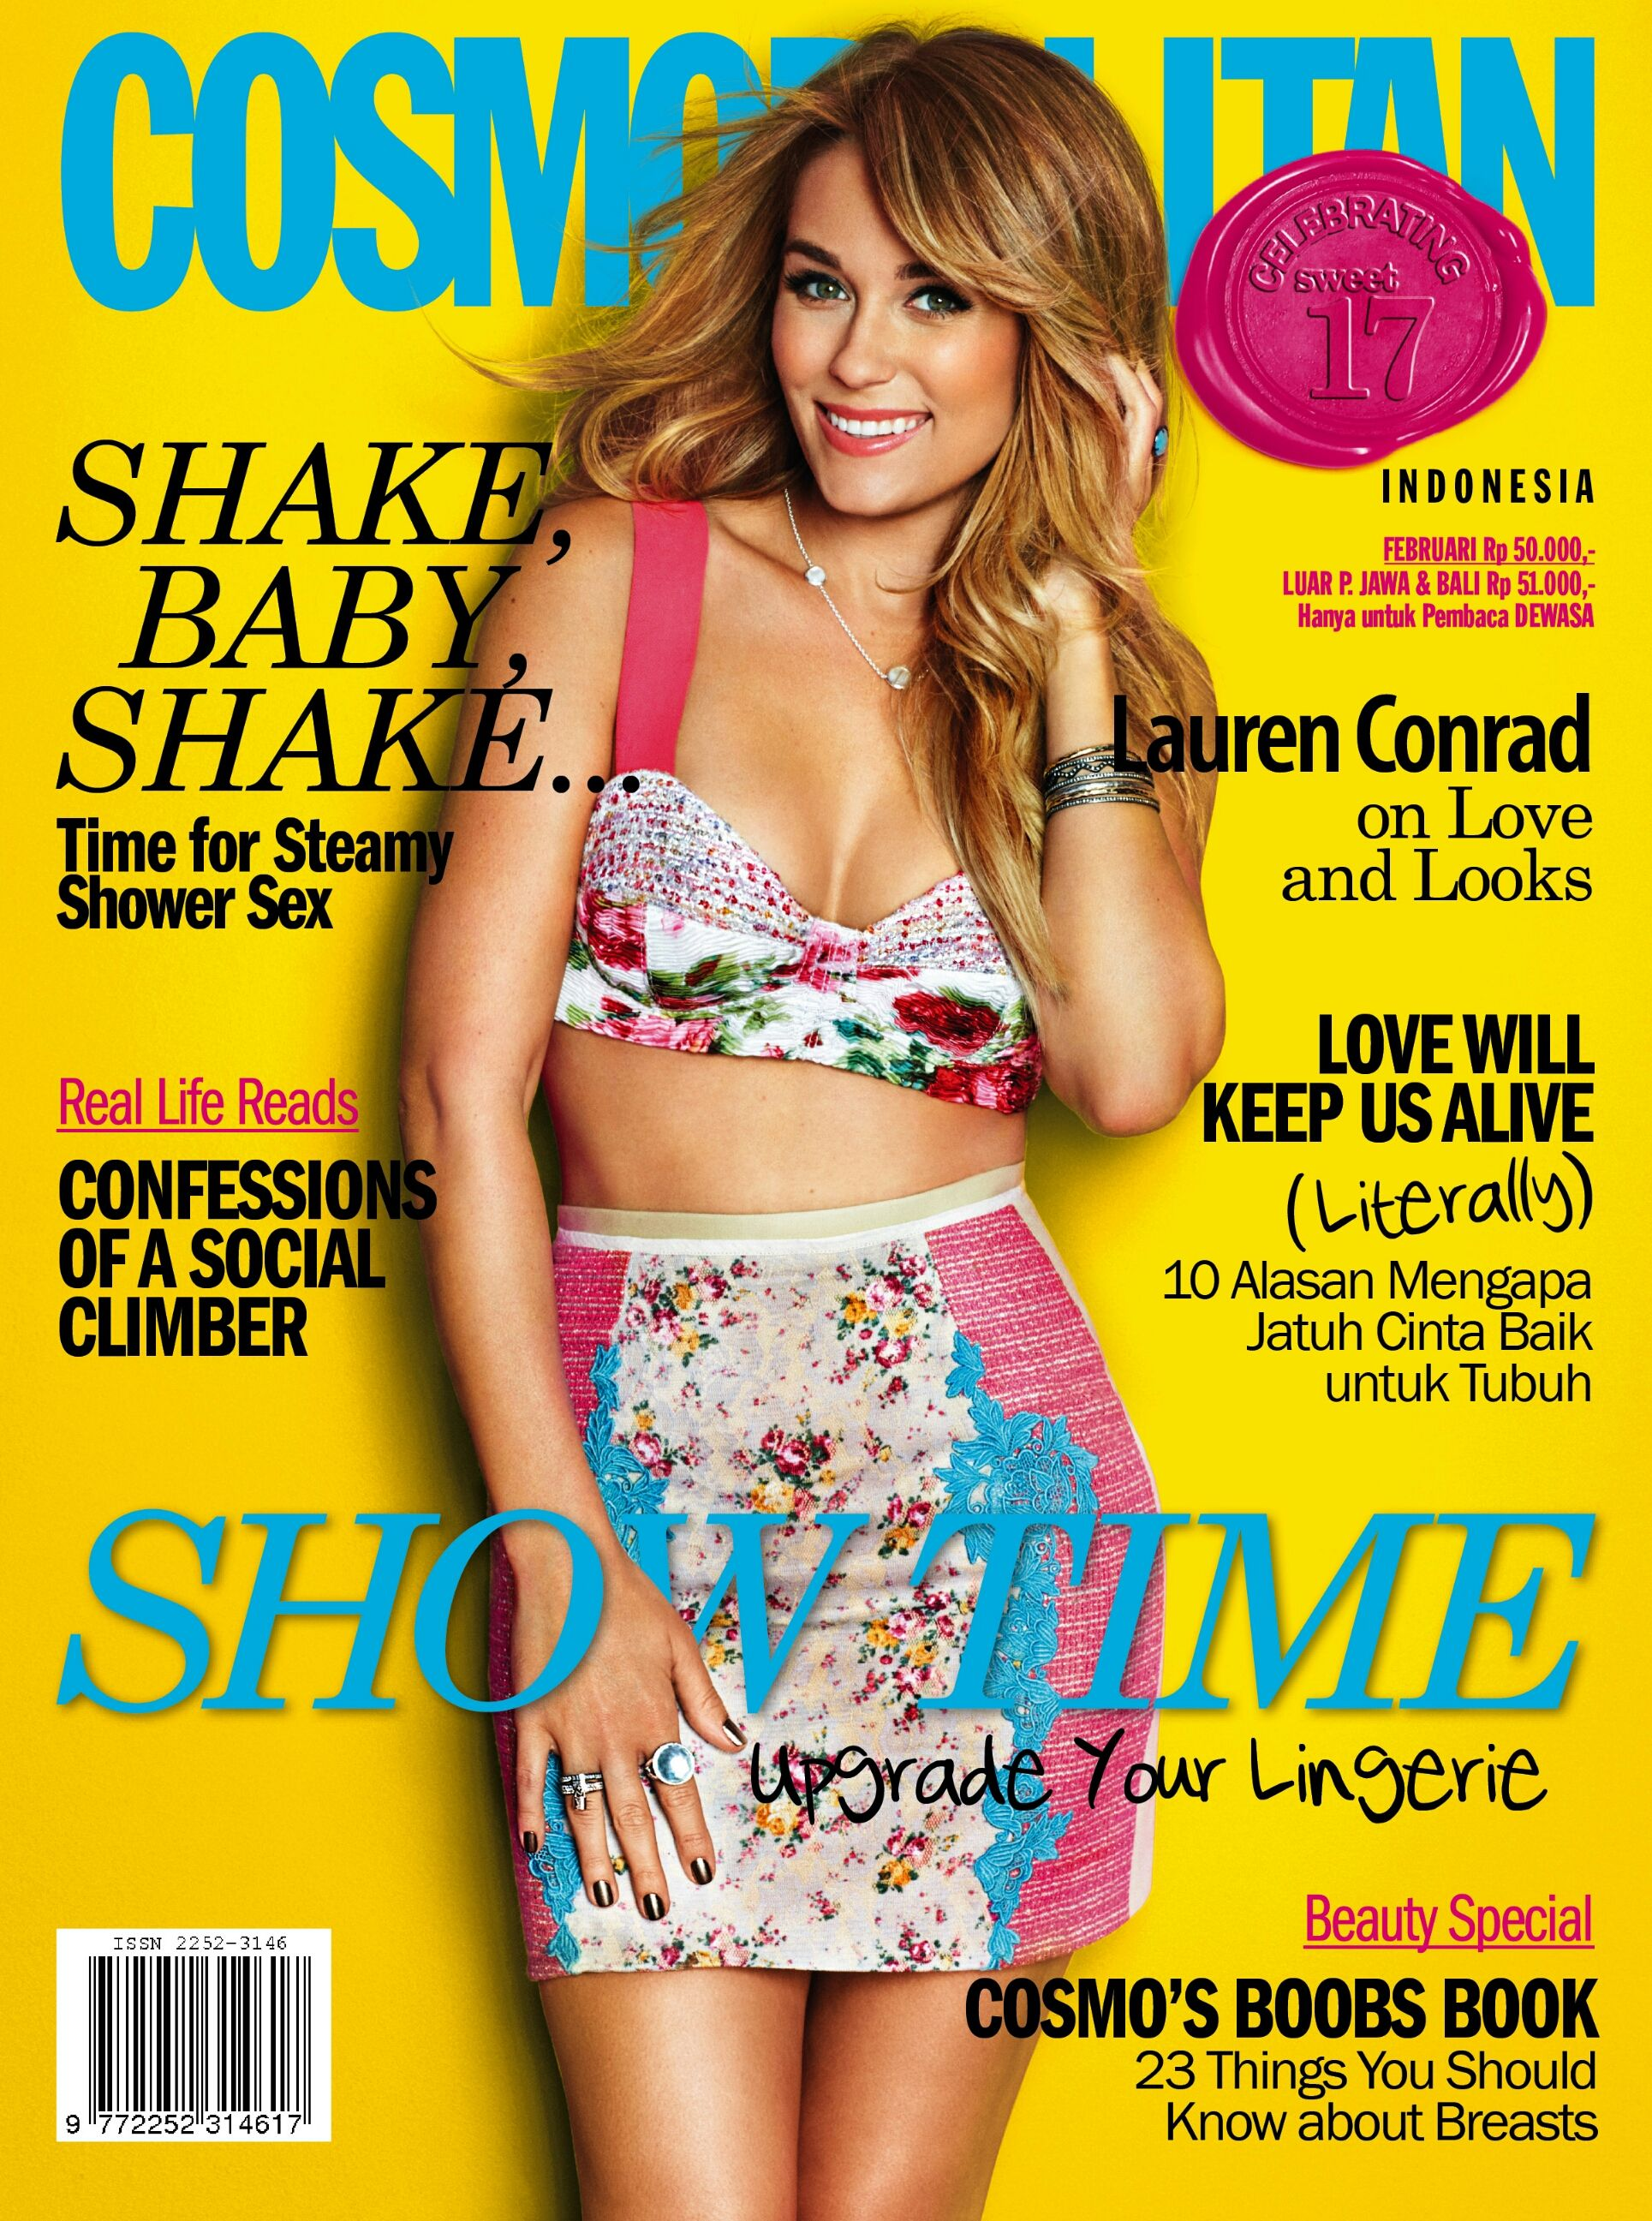 The February 2014 issue of Cosmopolitan Indonesia is now on the shelves. With special articles for the month of LOVE. Grab your copy now!